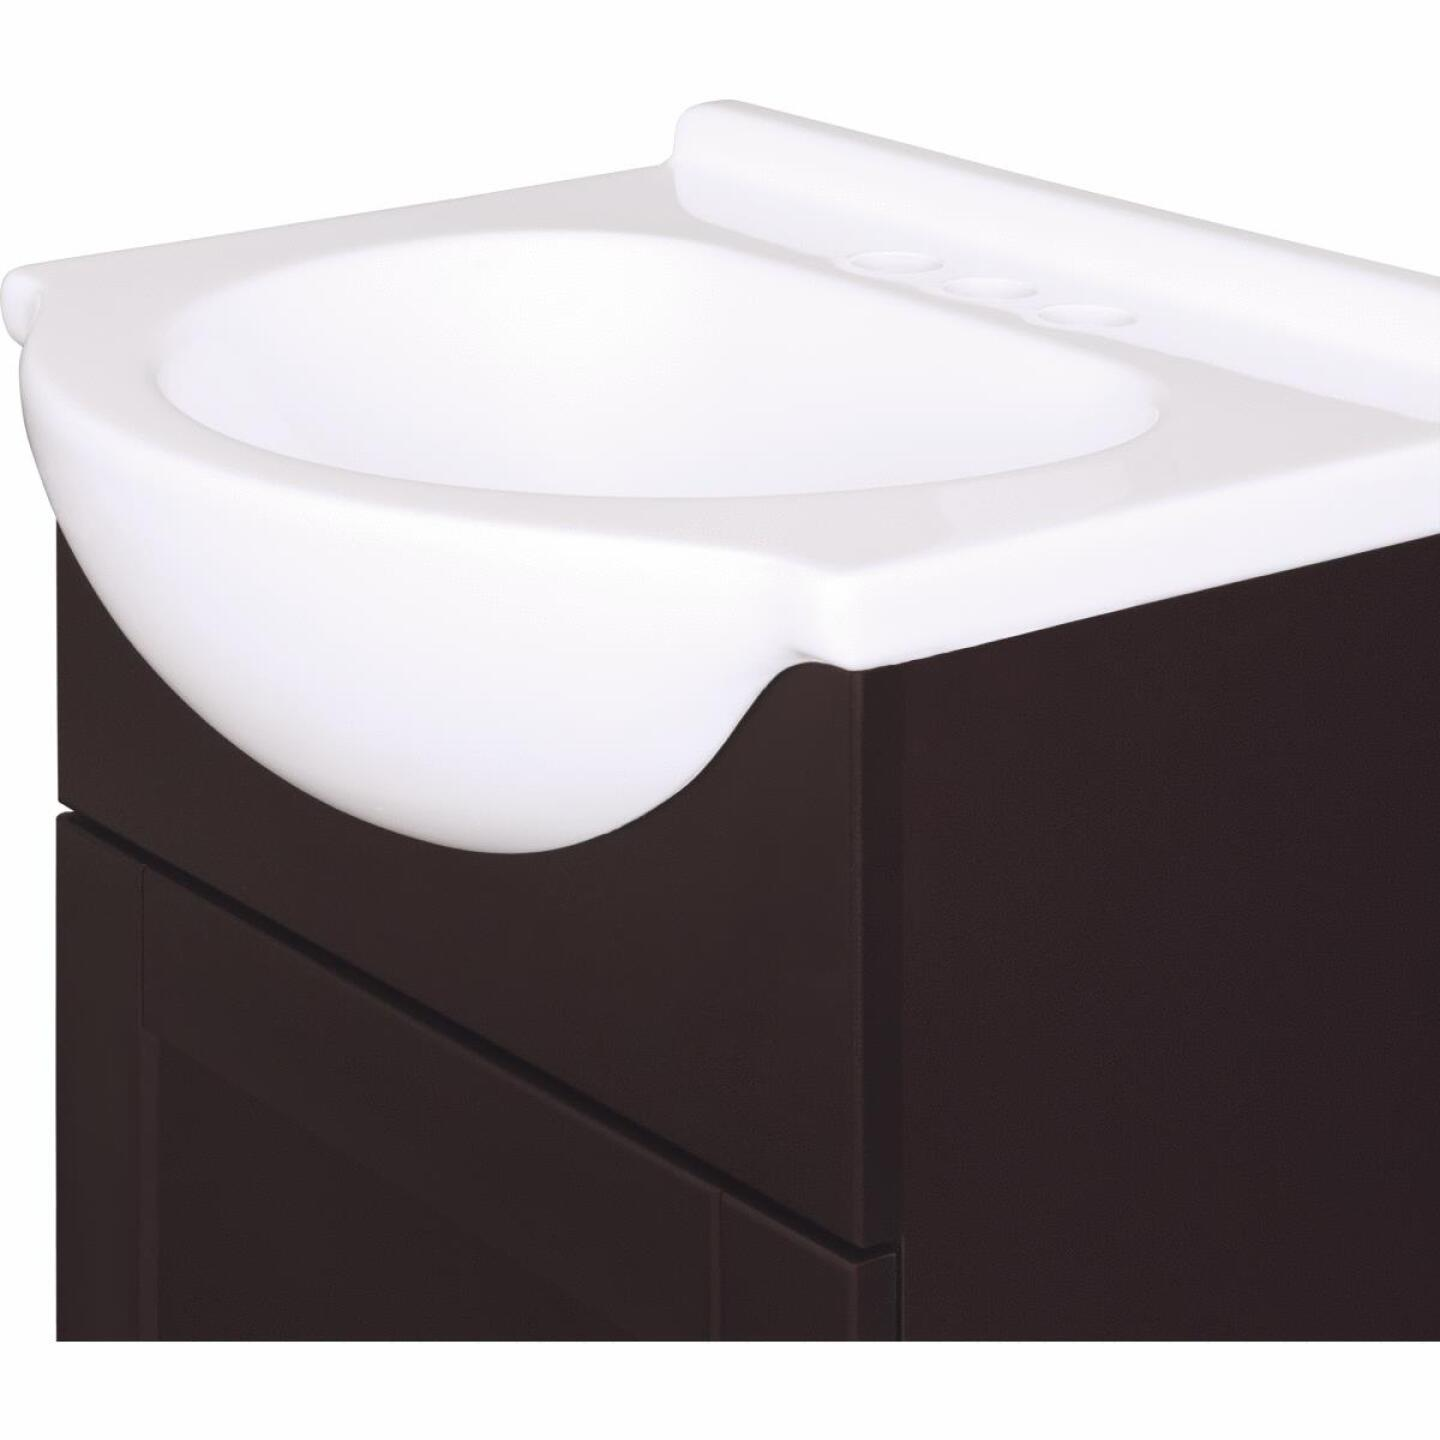 Continental Cabinets European Espresso 18 In. W x 33-1/2 In. H x 12-1/2 In. D Vanity with Cultured Marble Top Image 1